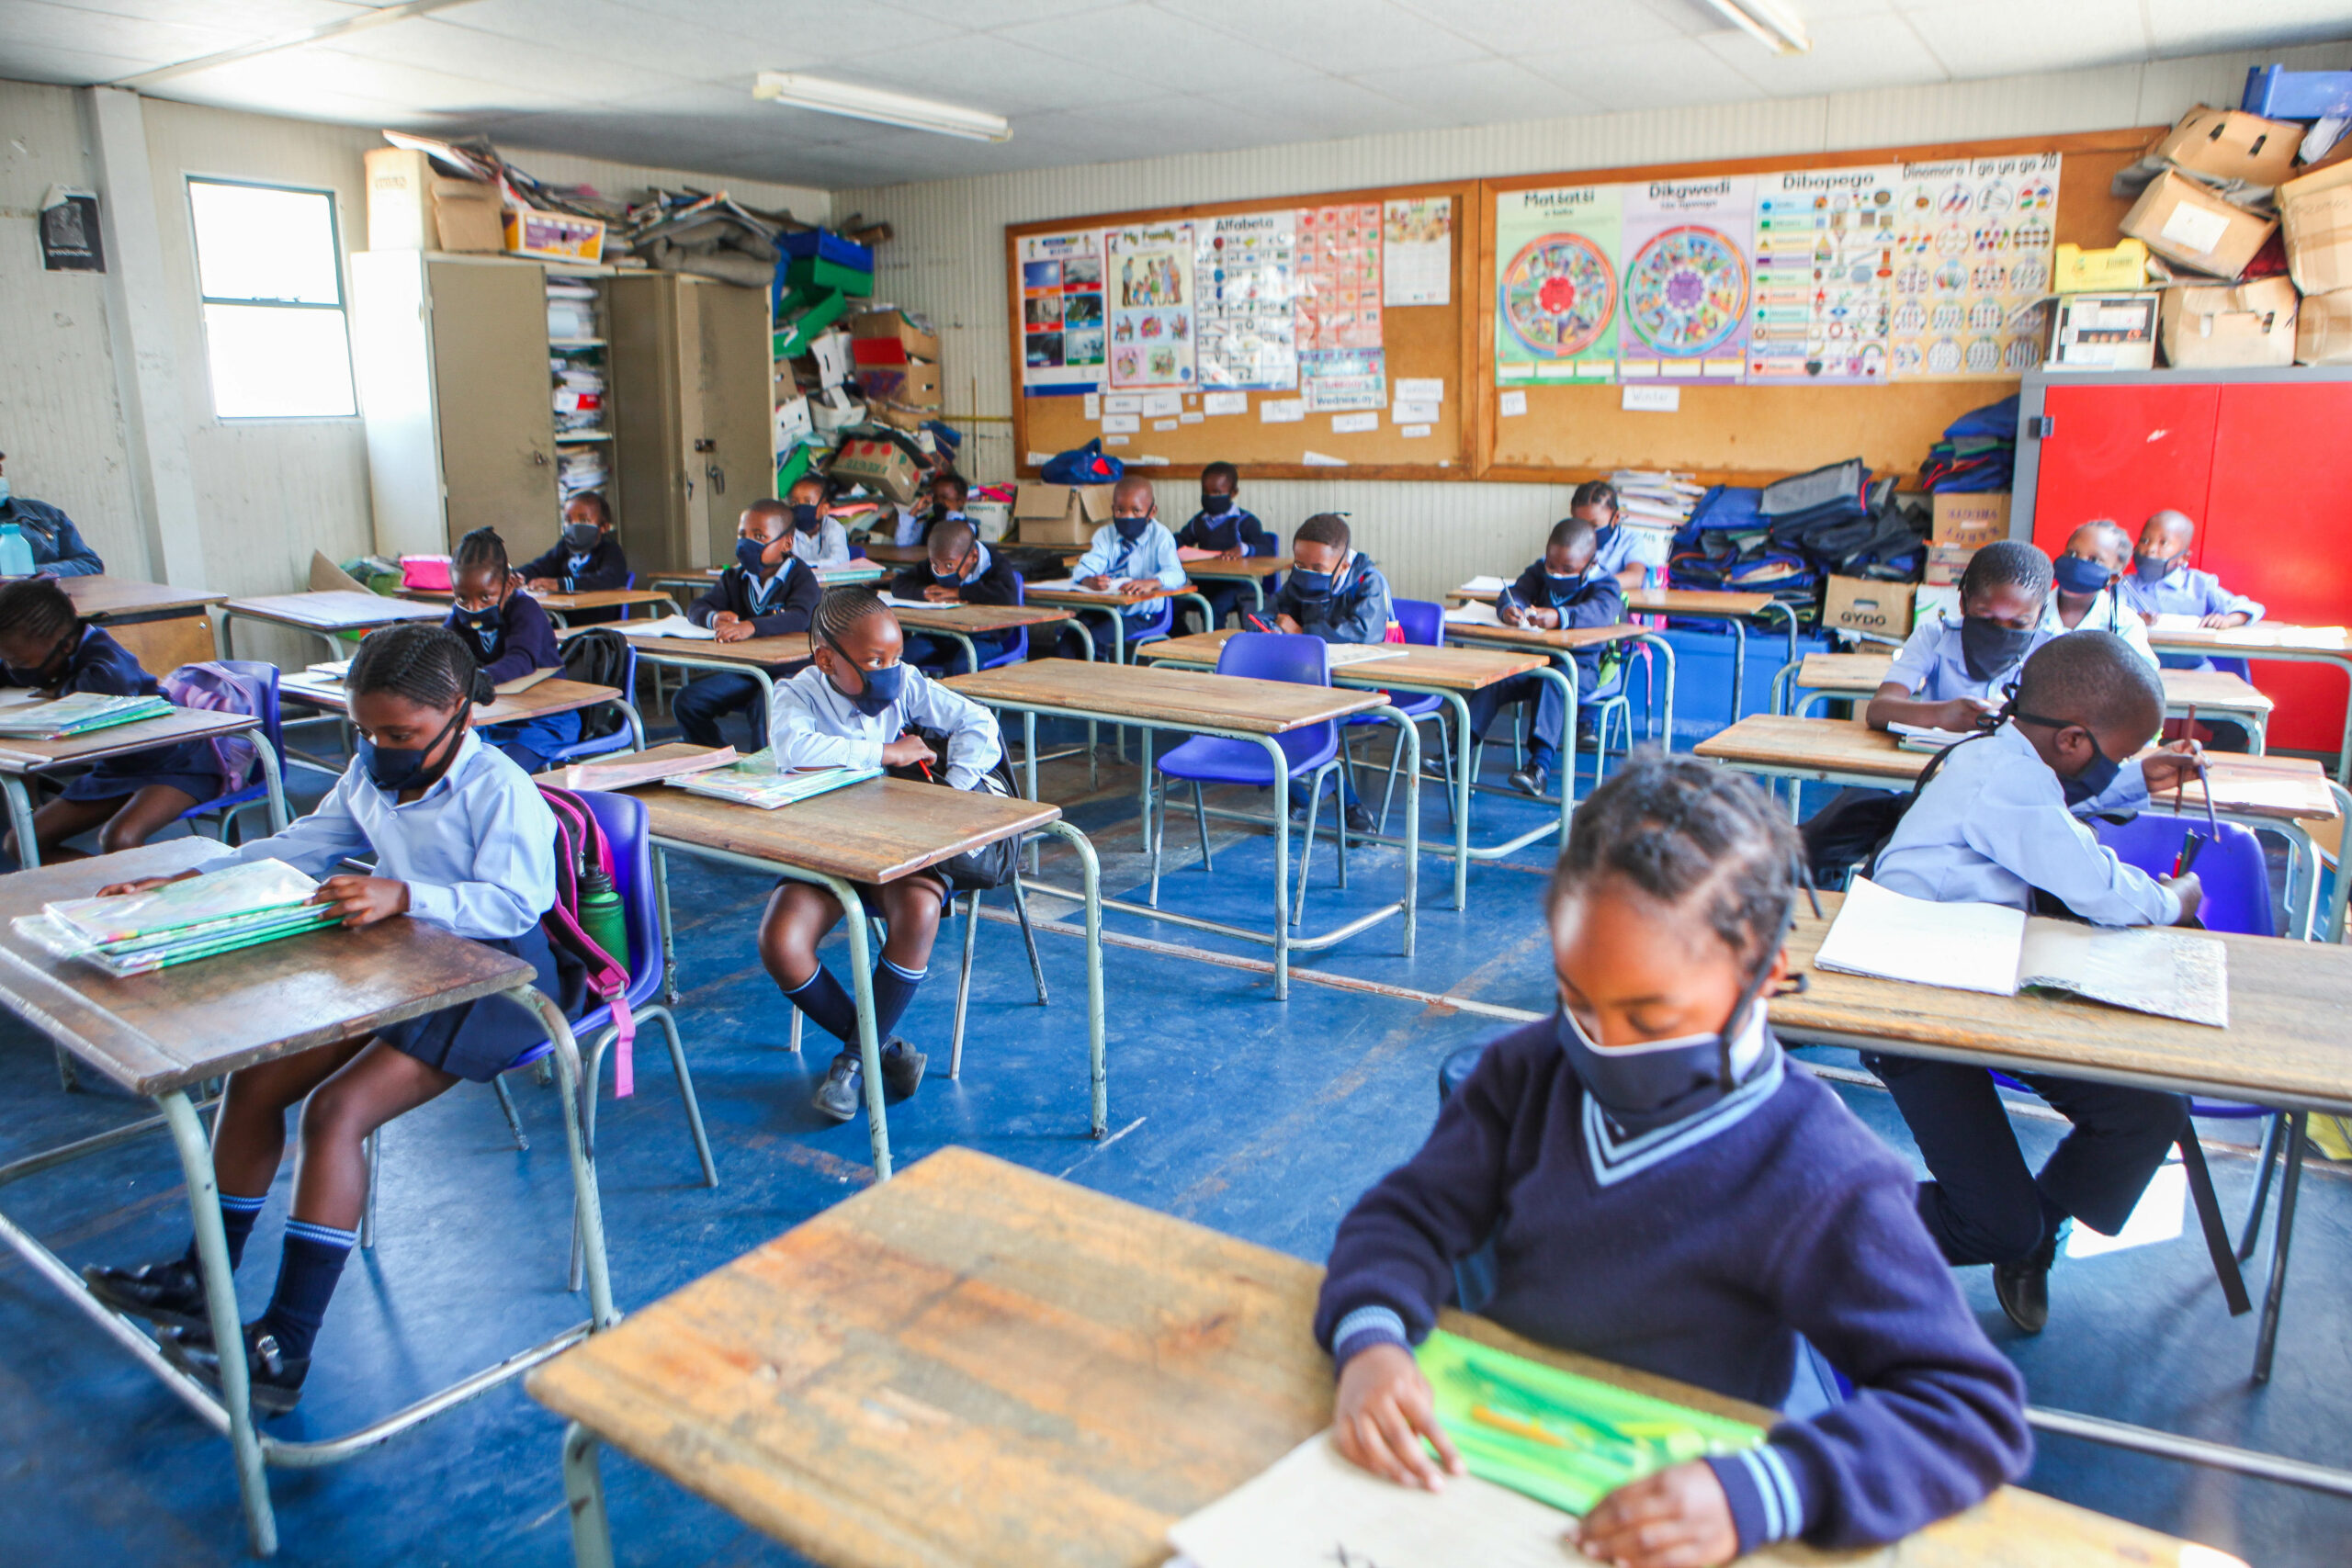 The government needs to put human rights at the heart of education policy